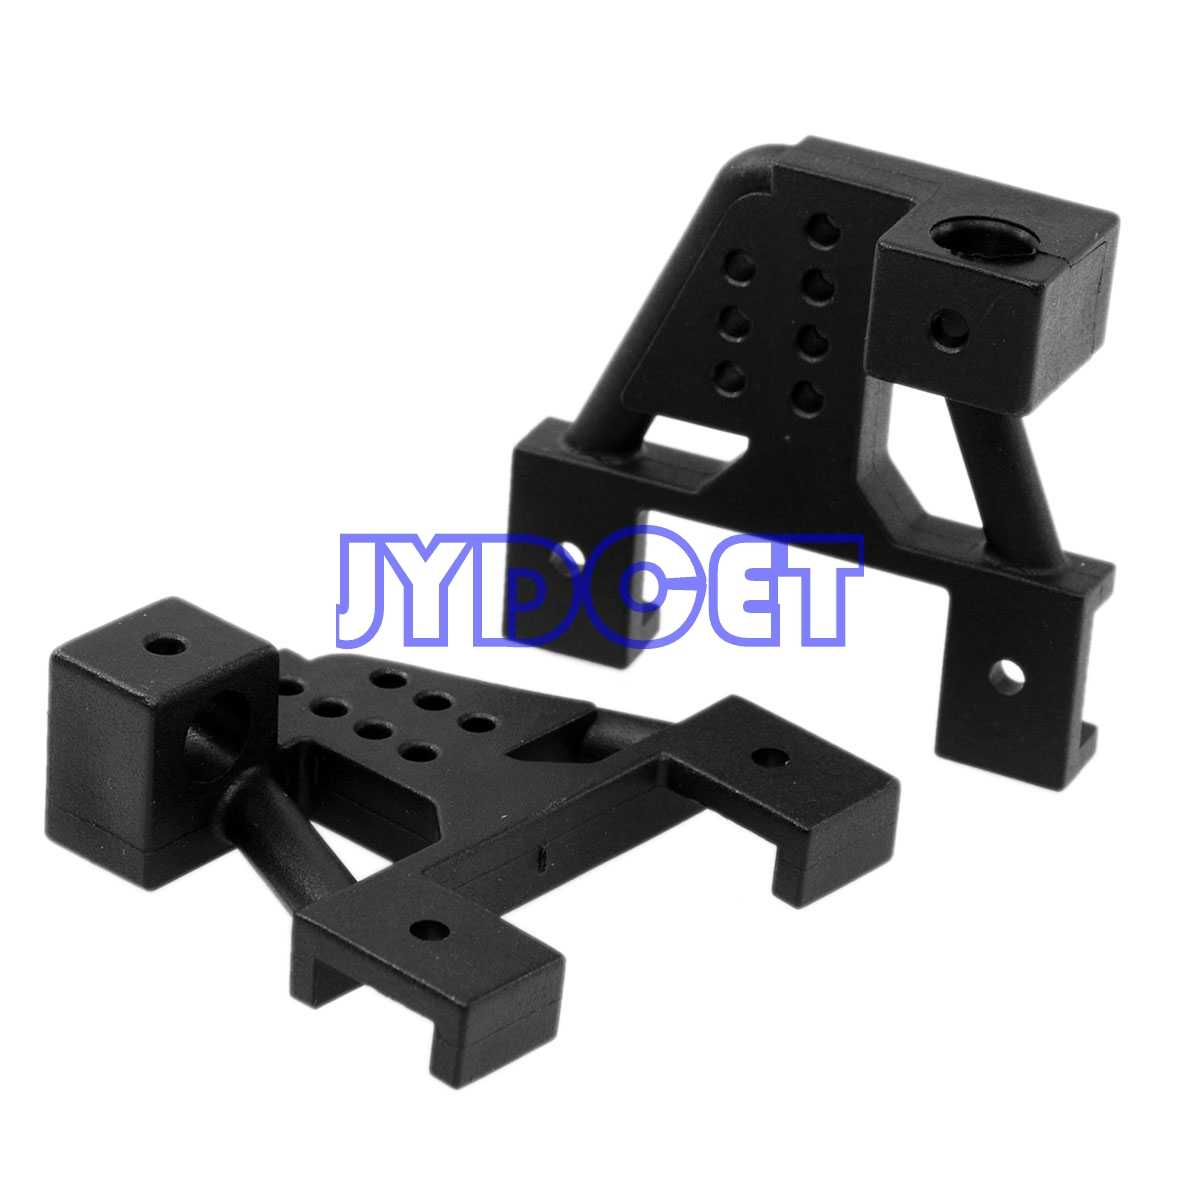 2pcs Front/Rear body plates R86017 For RC Model Car Crawler RGT 1/10 Monster Truck Off Road Rock Cruiser EX86100 Spare parts 2P